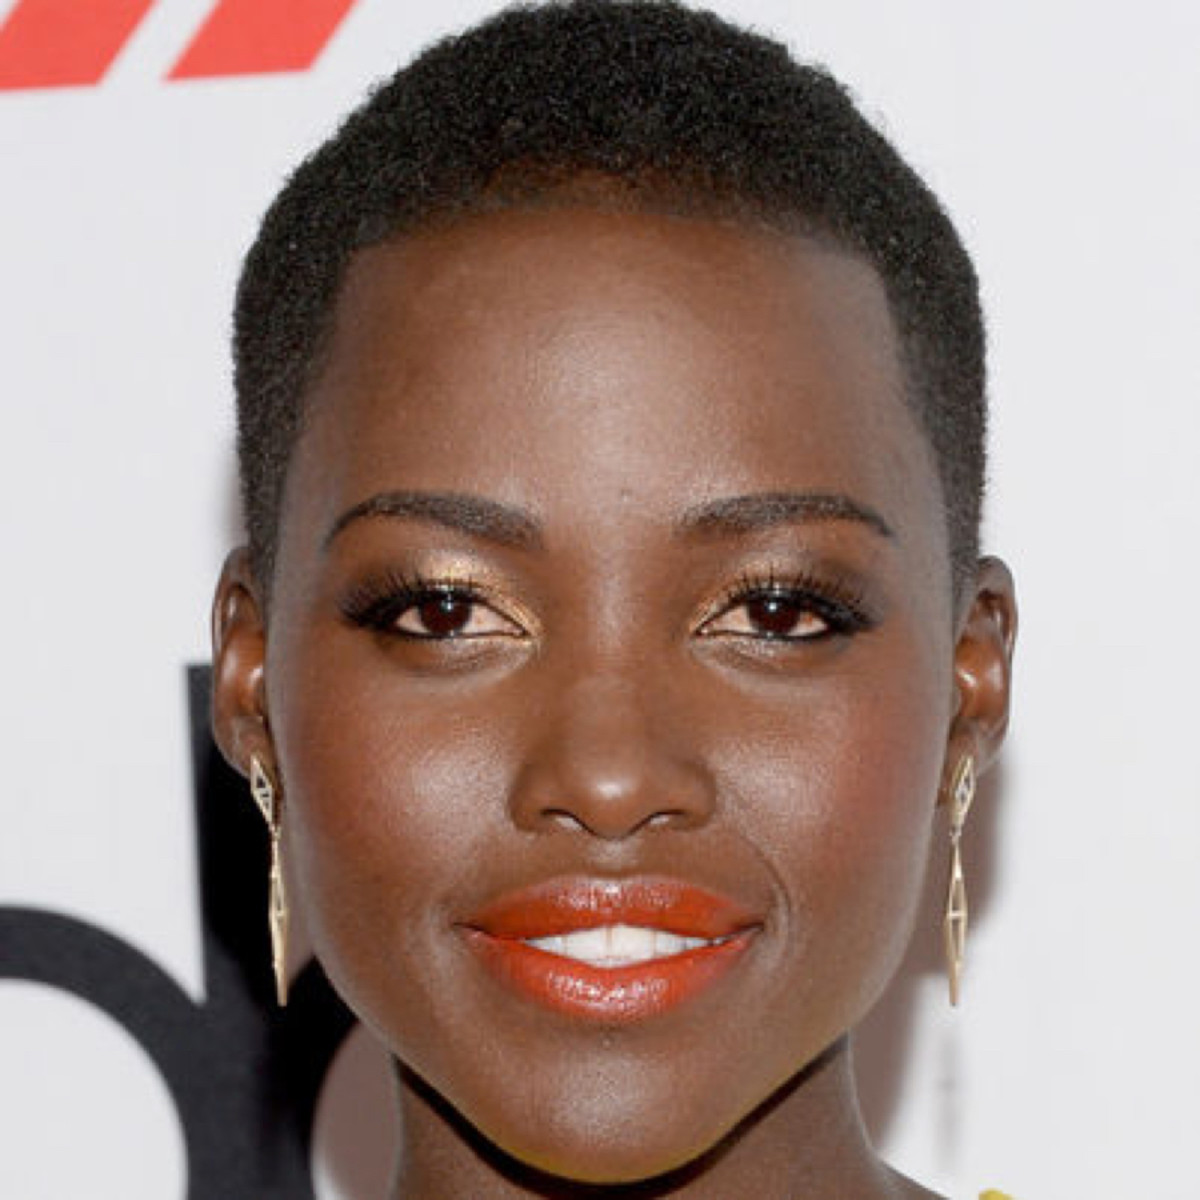 Lupita Nyong'o plays Maz Kanata, a wily space pirate, who runs a very Star Wars cantina in The Force Awakens.